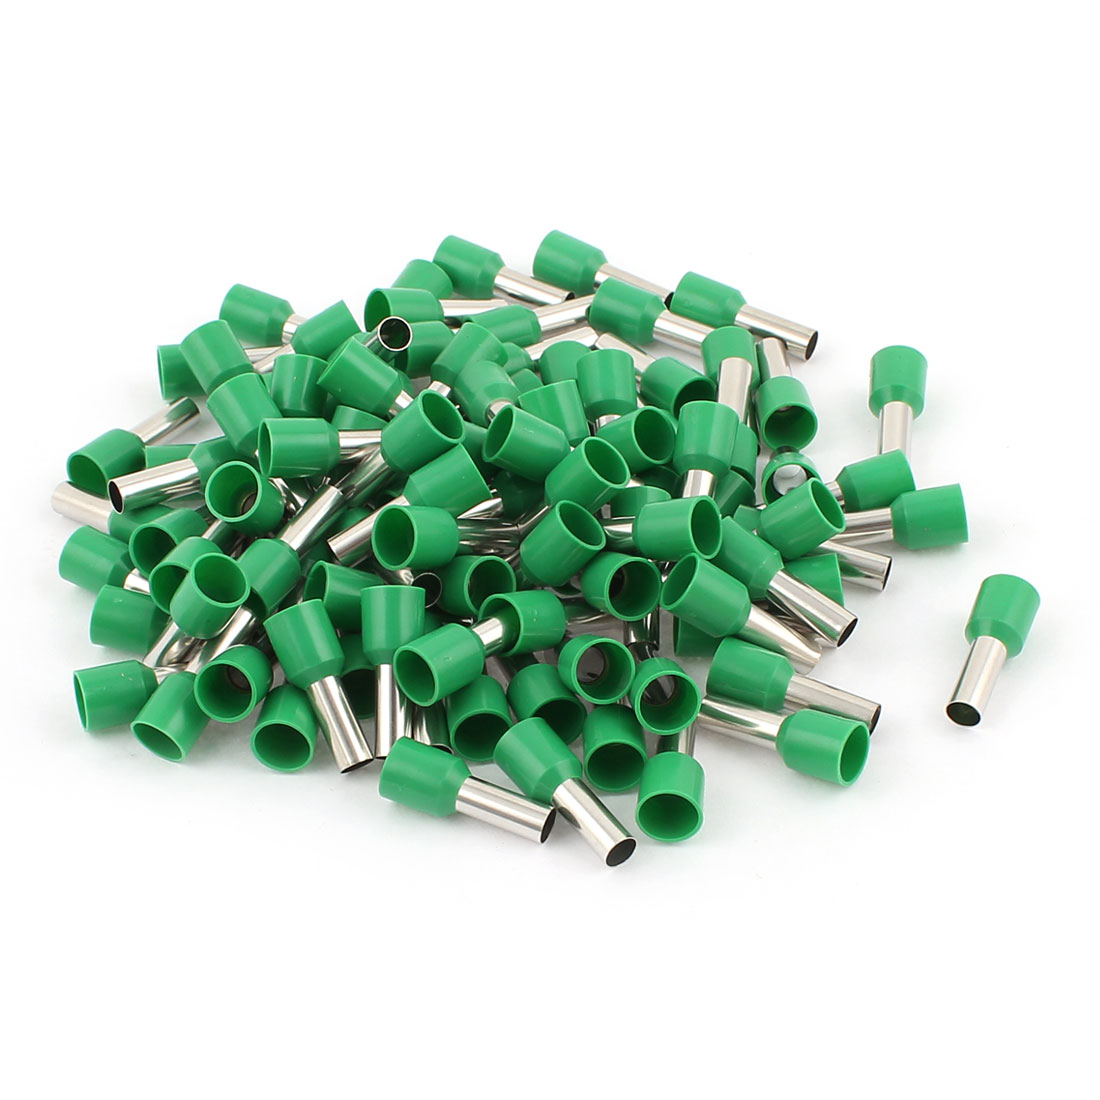 100 Pcs 10mm2 Crimp Cord Wire End Terminal Insulated Bootlace Ferrule Connector Green